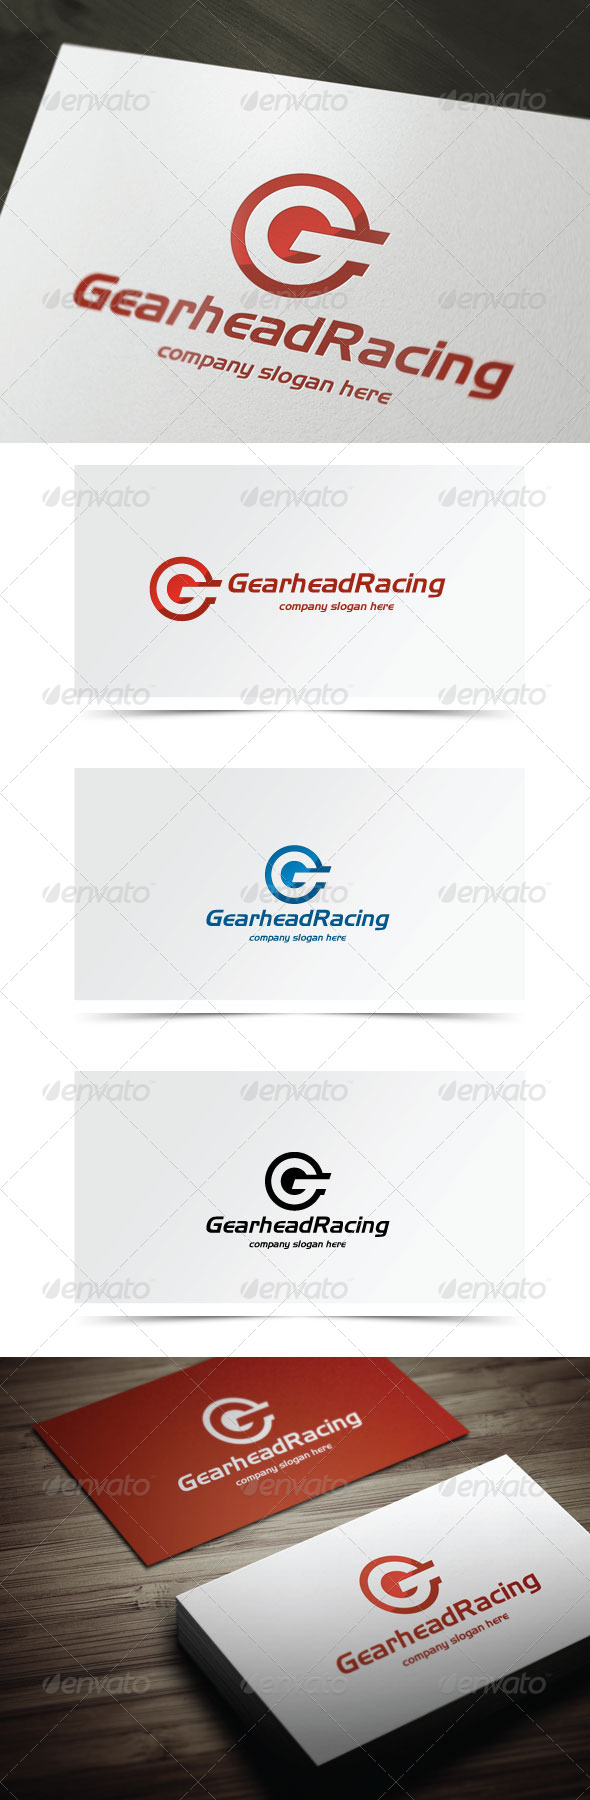 Gearhead Racing - Letters Logo Templates